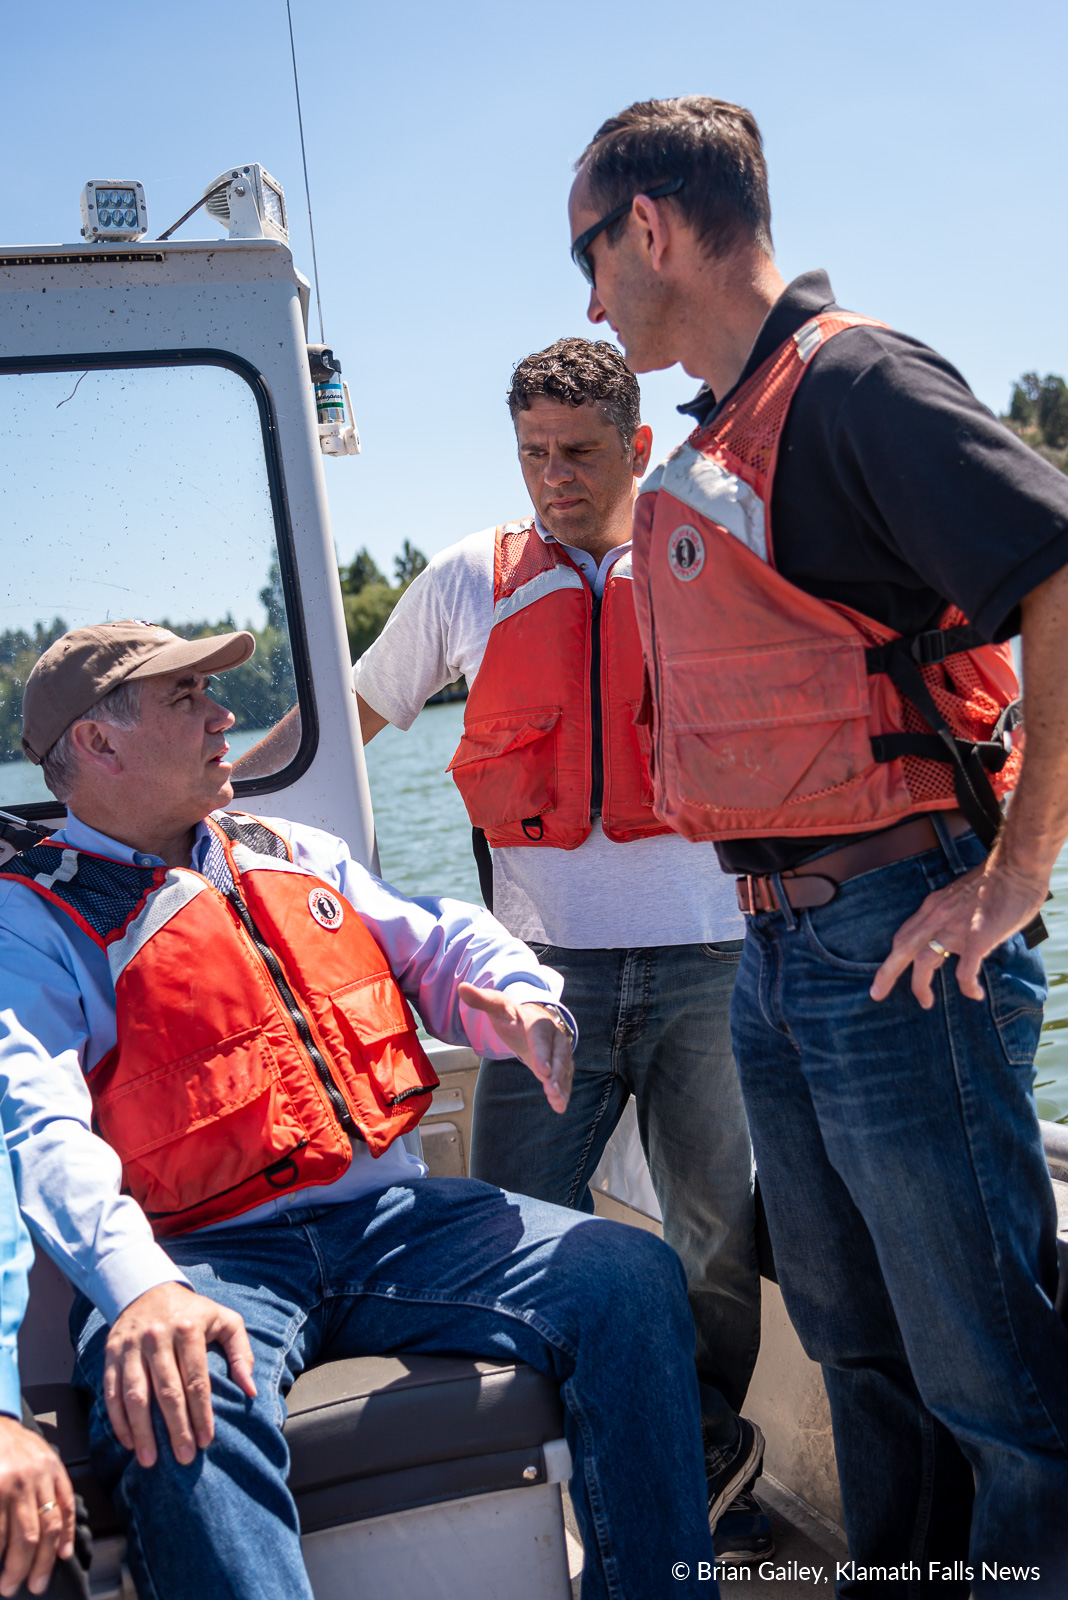 US Senator Jeff Merkley discusses lake biology with Josh Rasmussen a Fish Biologist for USFWS and USFWS Field Supervisor Dan Blake. August 12, 2019 (Image: Brian Gailey / Klamath Falls News)